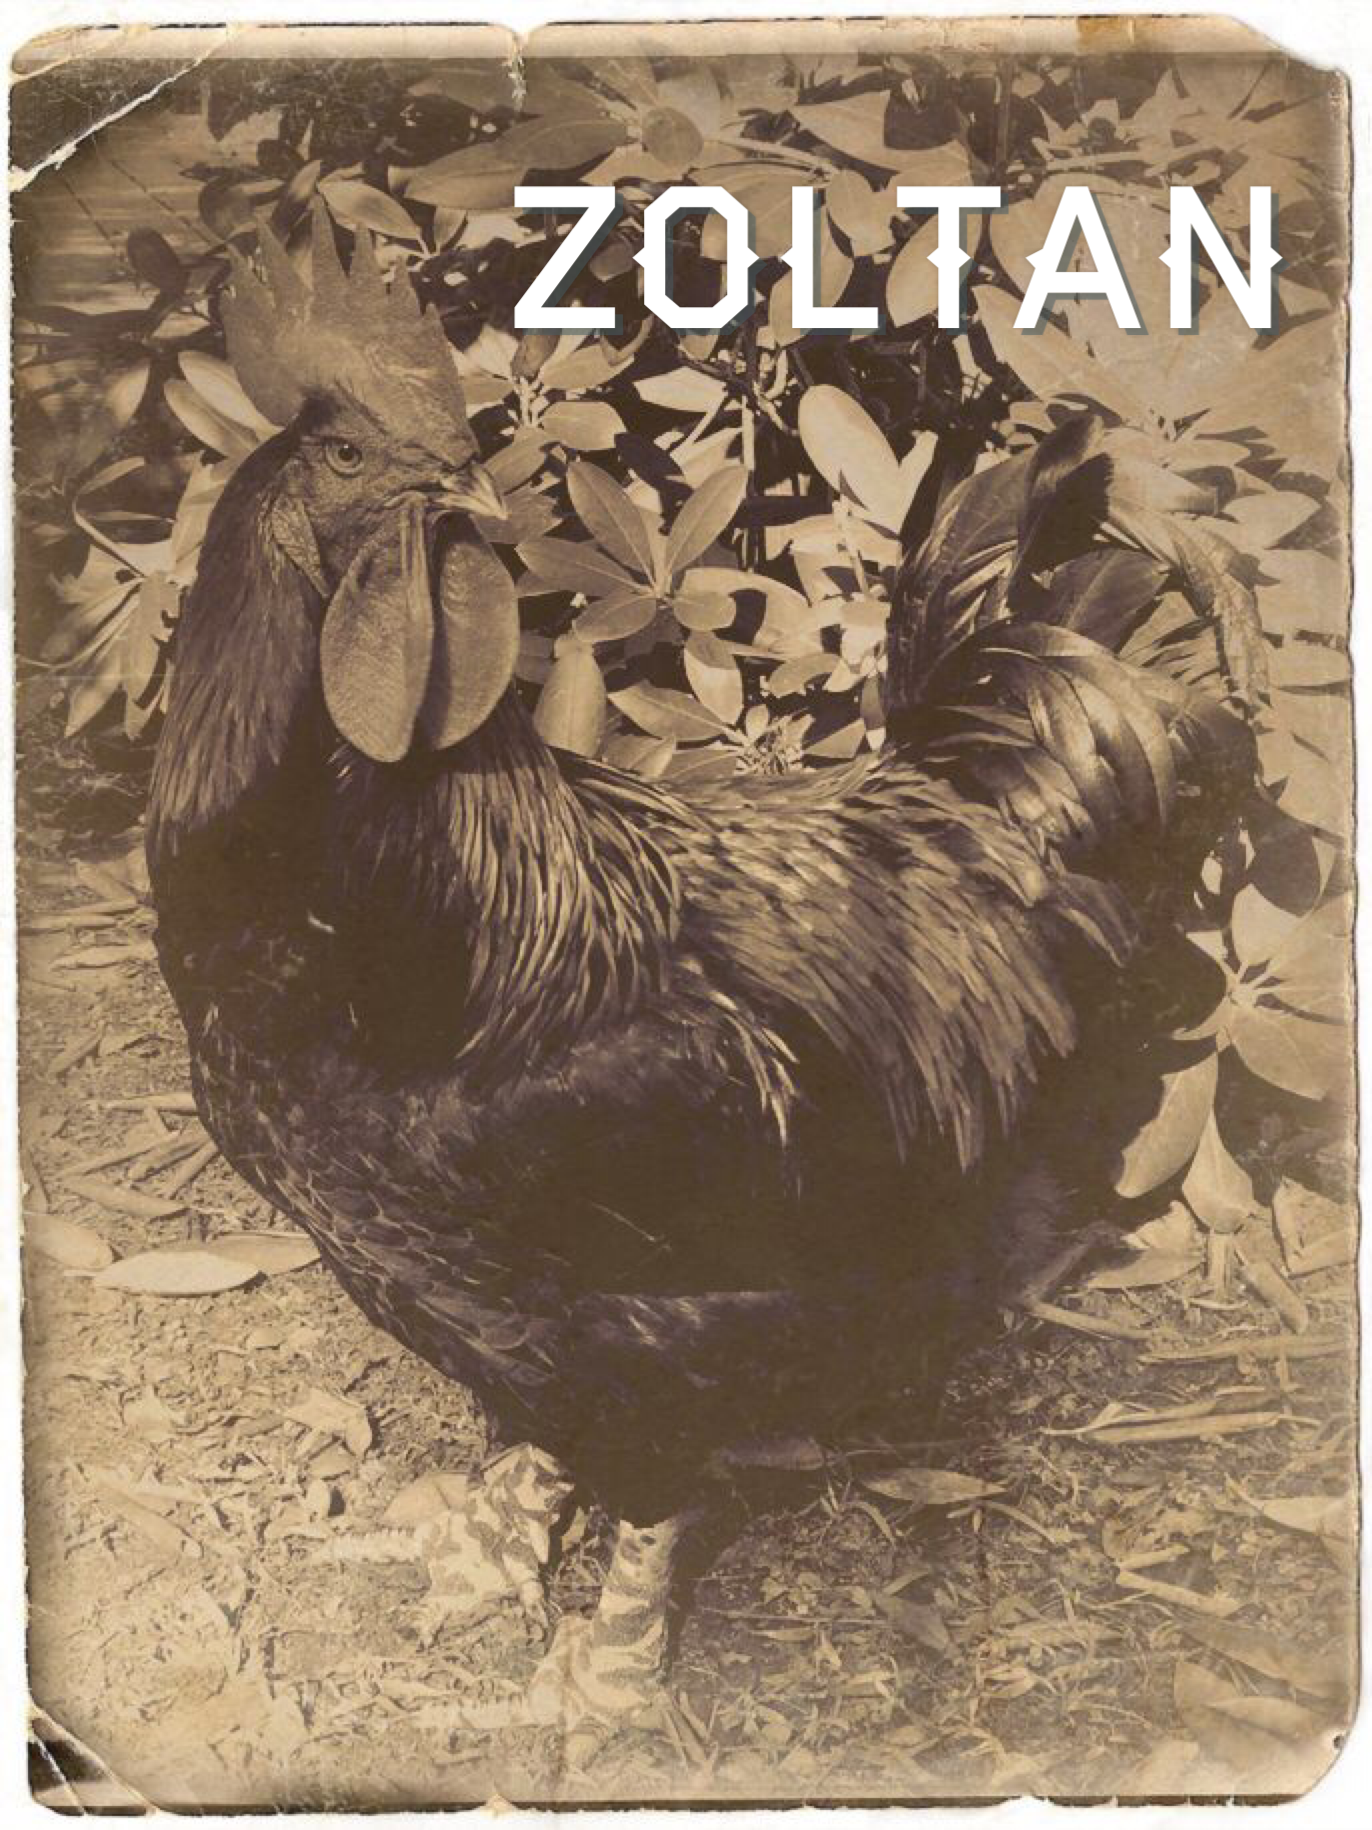 ZOLTAN - Found wandering in Queens, carefully protecting Flopsie and Mopsie.